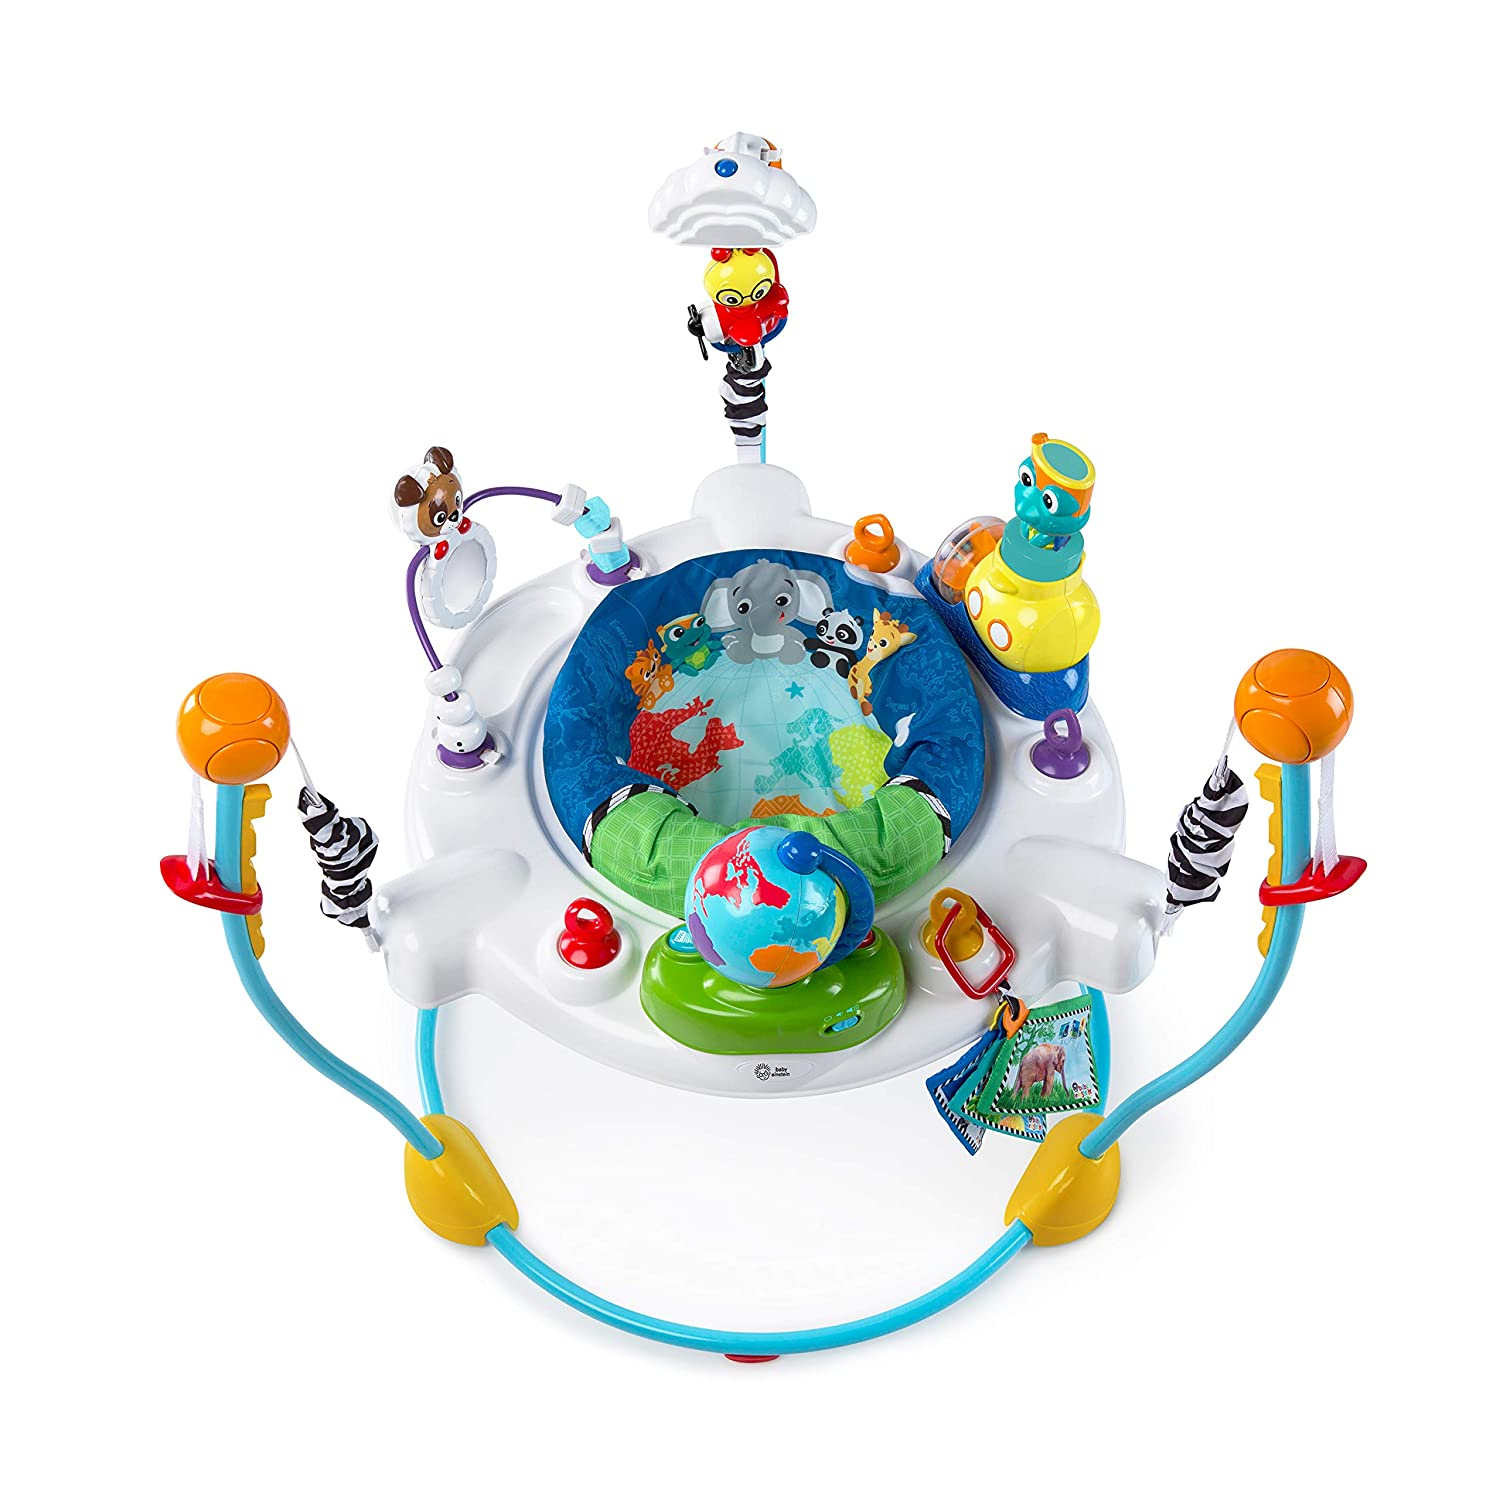 Amazon.com: Baby Einstein, Journey Of Discovery Jumper: Baby